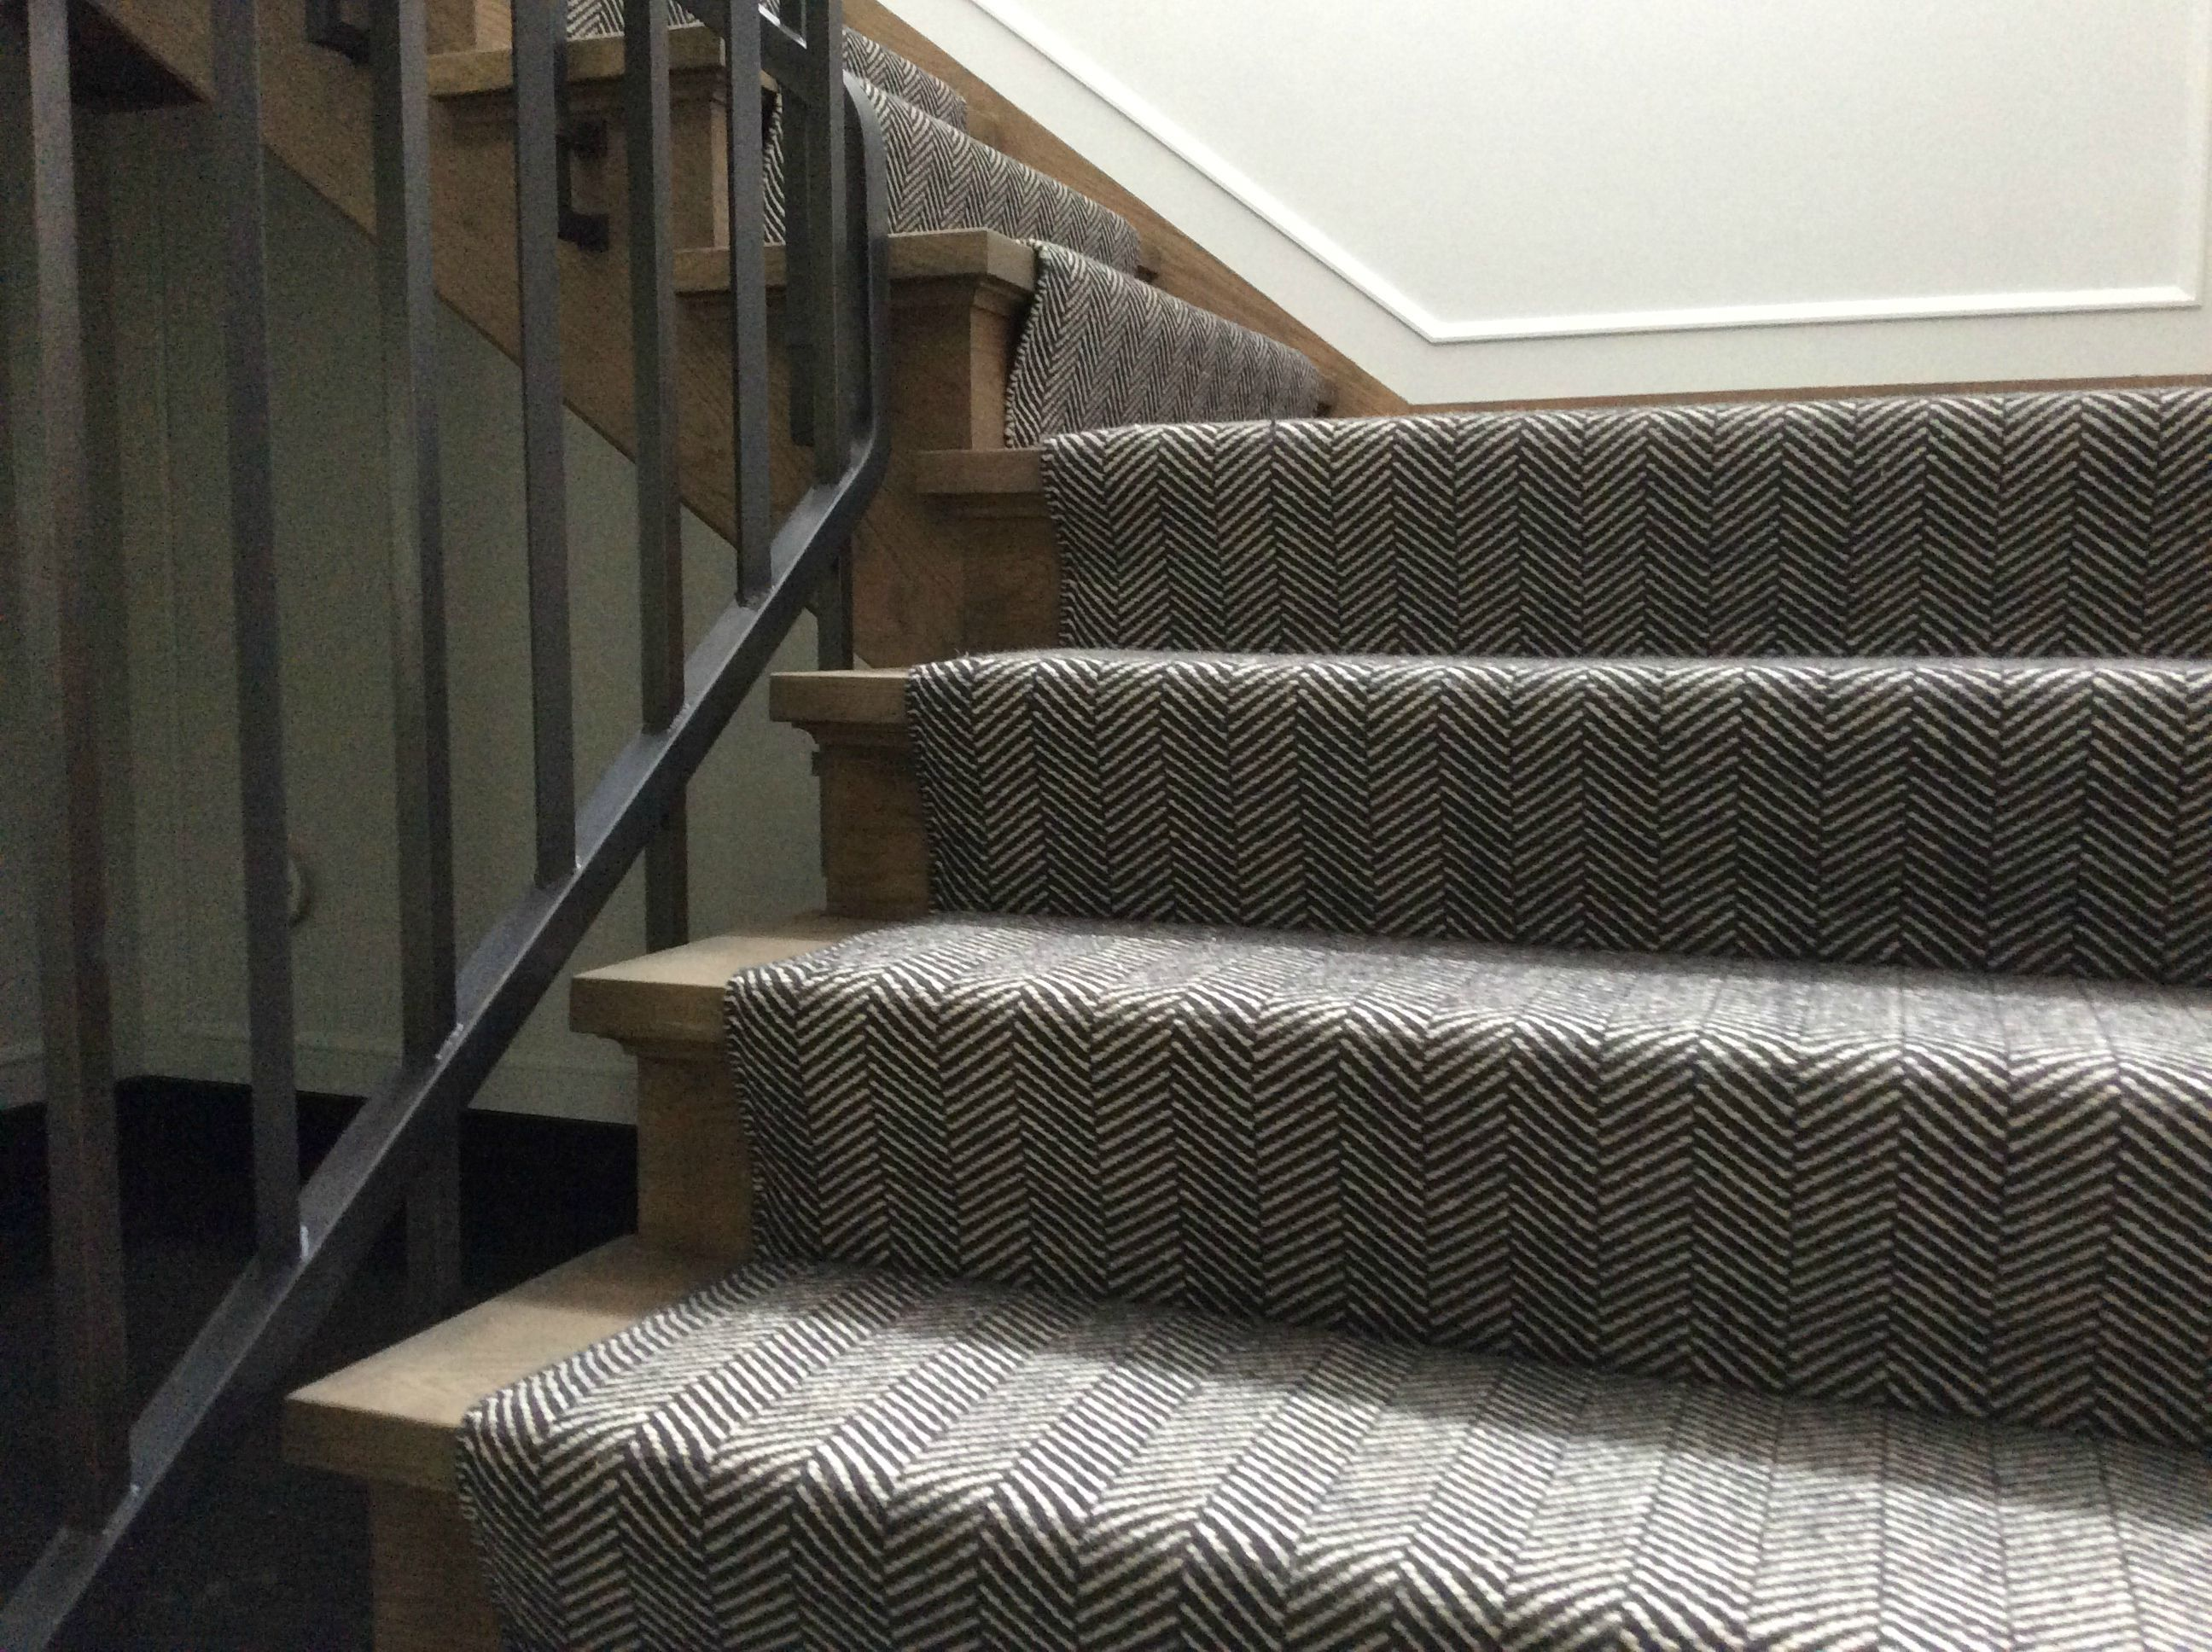 Best Cavalcanti Stair Runner In Herringbone Design Flatwoven 640 x 480